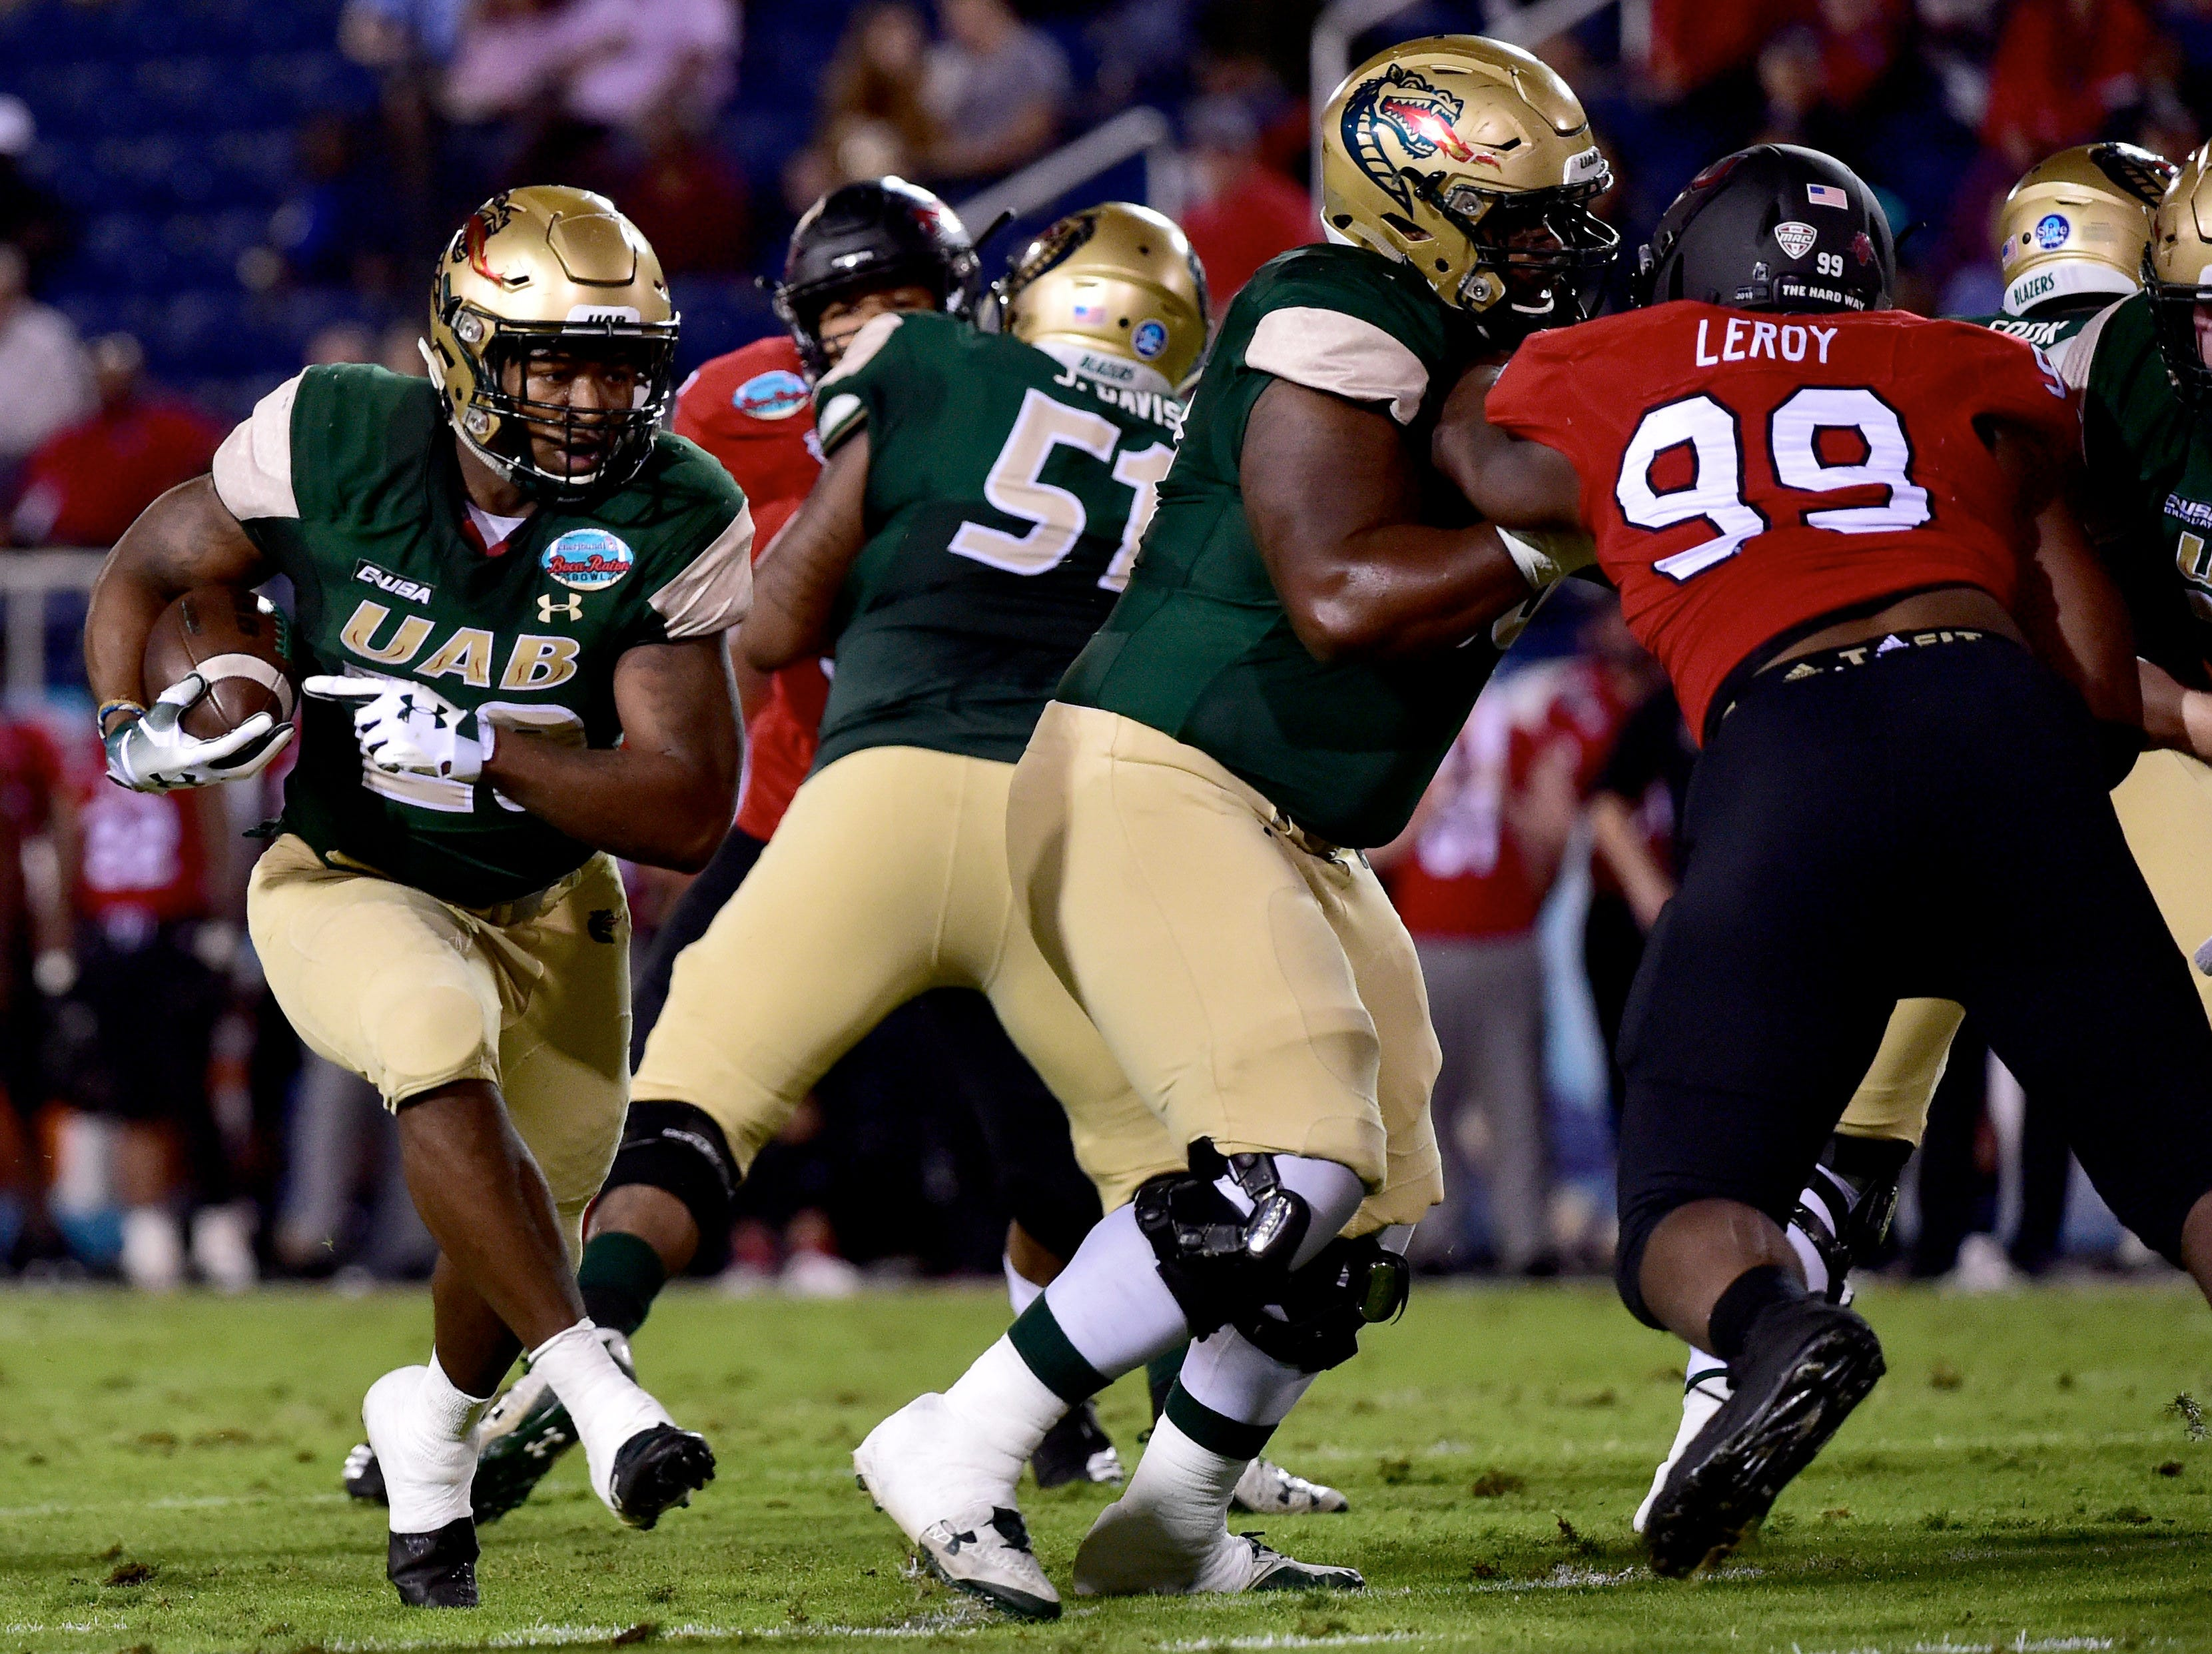 UAB Blazers running back Spencer Brown (28) carries the ball against the Northern Illinois Huskies in the Boca Raton Bowl.